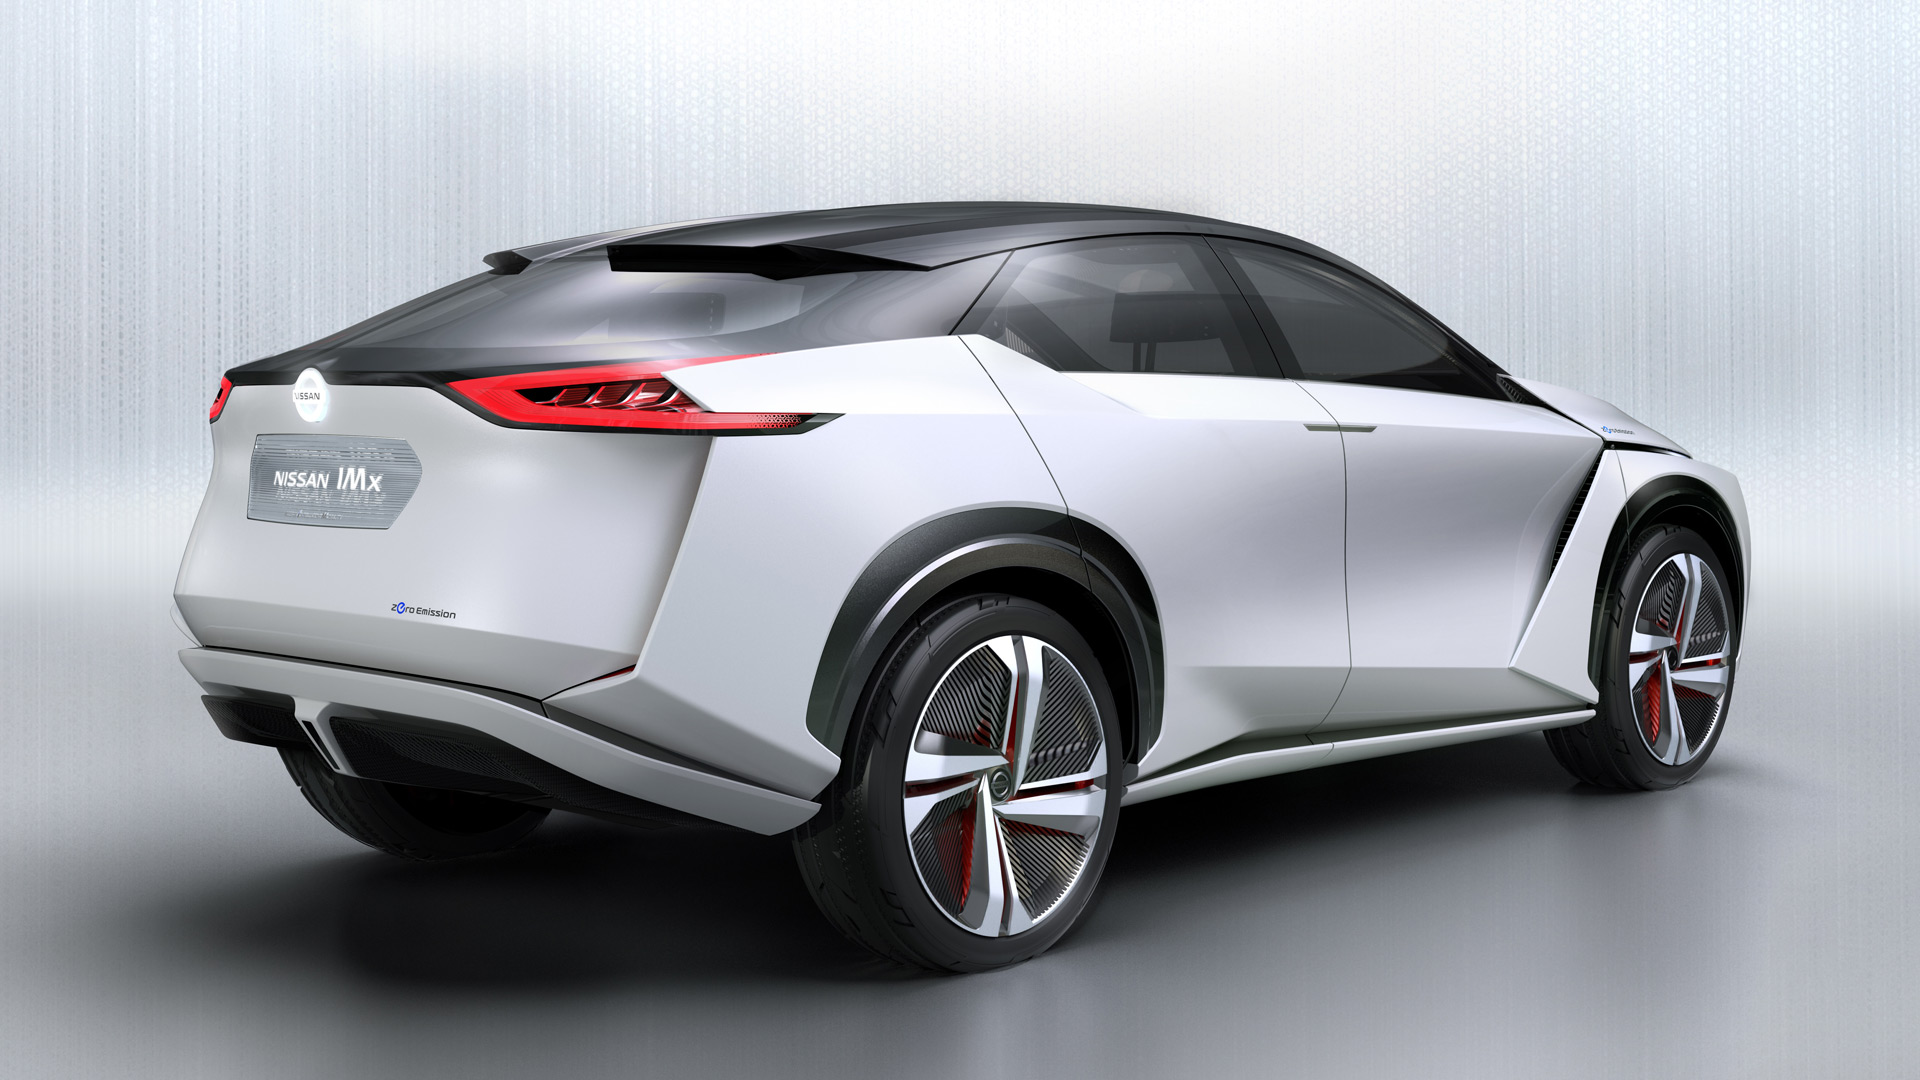 Nissan electric crossover due in 2020 closely follows IMx ...